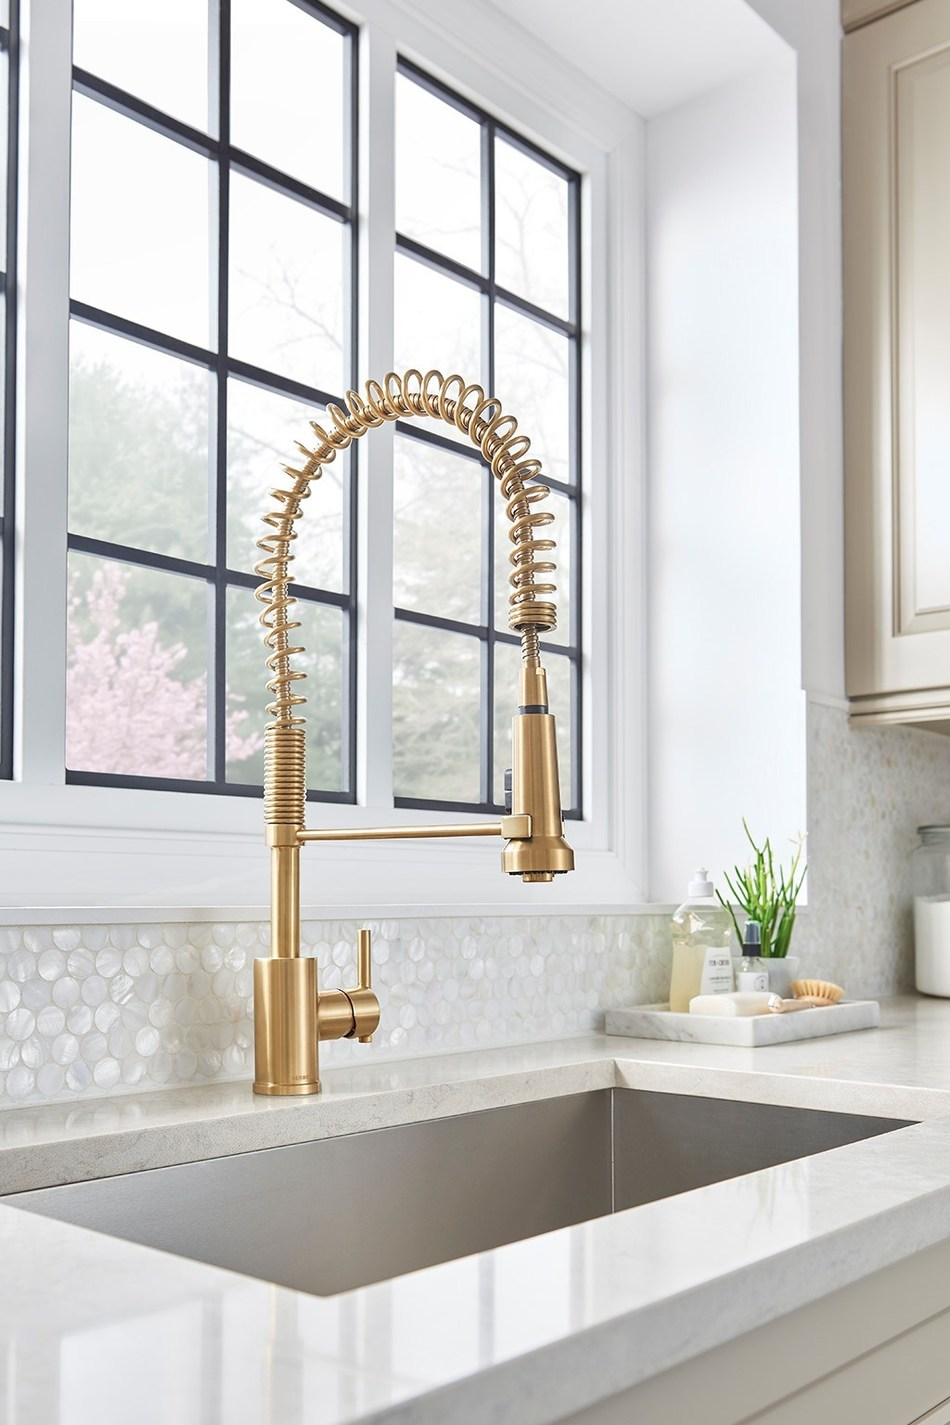 Gerber® Parma® Pre-Rinse Kitchen Faucet in Brushed Bronze.